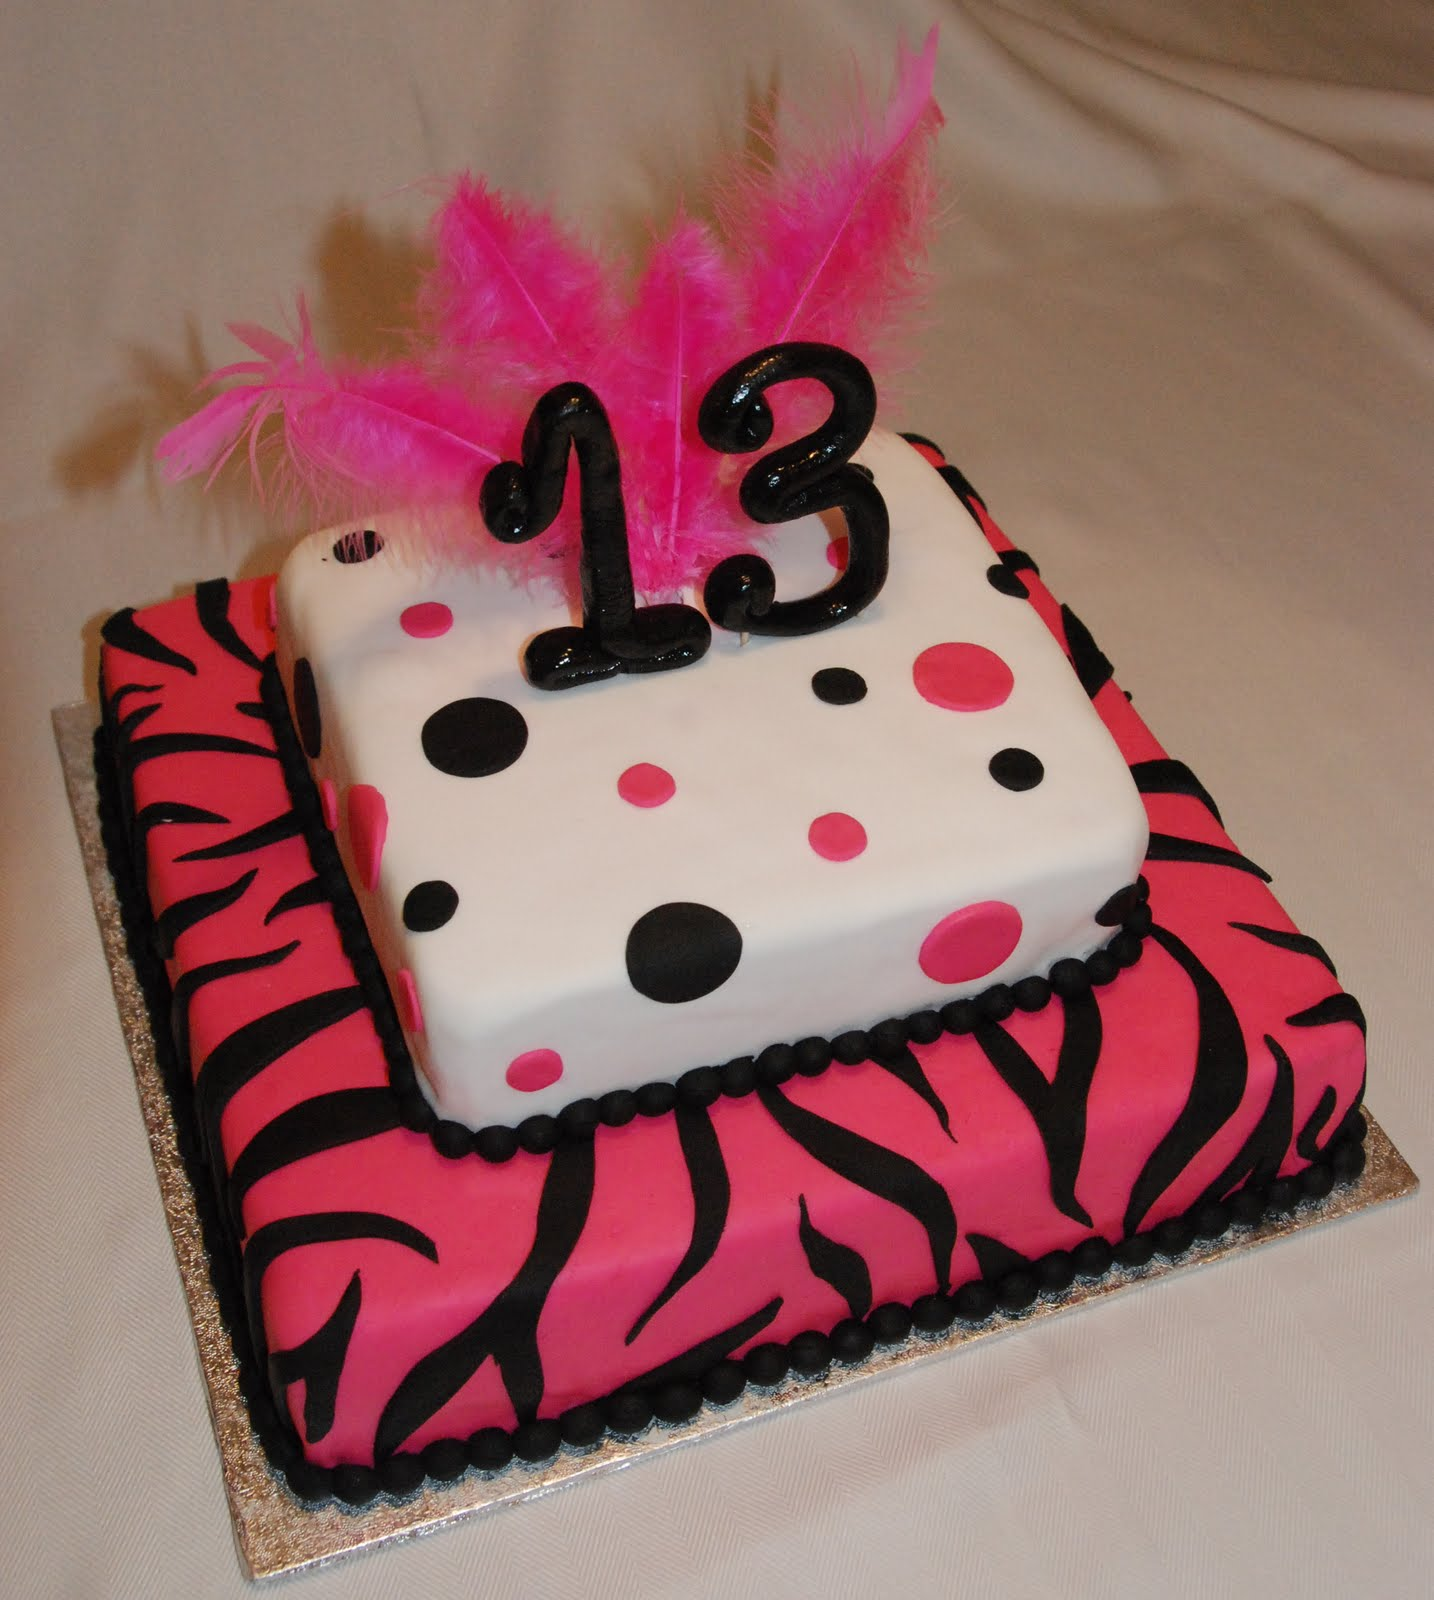 Cake Creations By Trish: 13th Birthday Cake